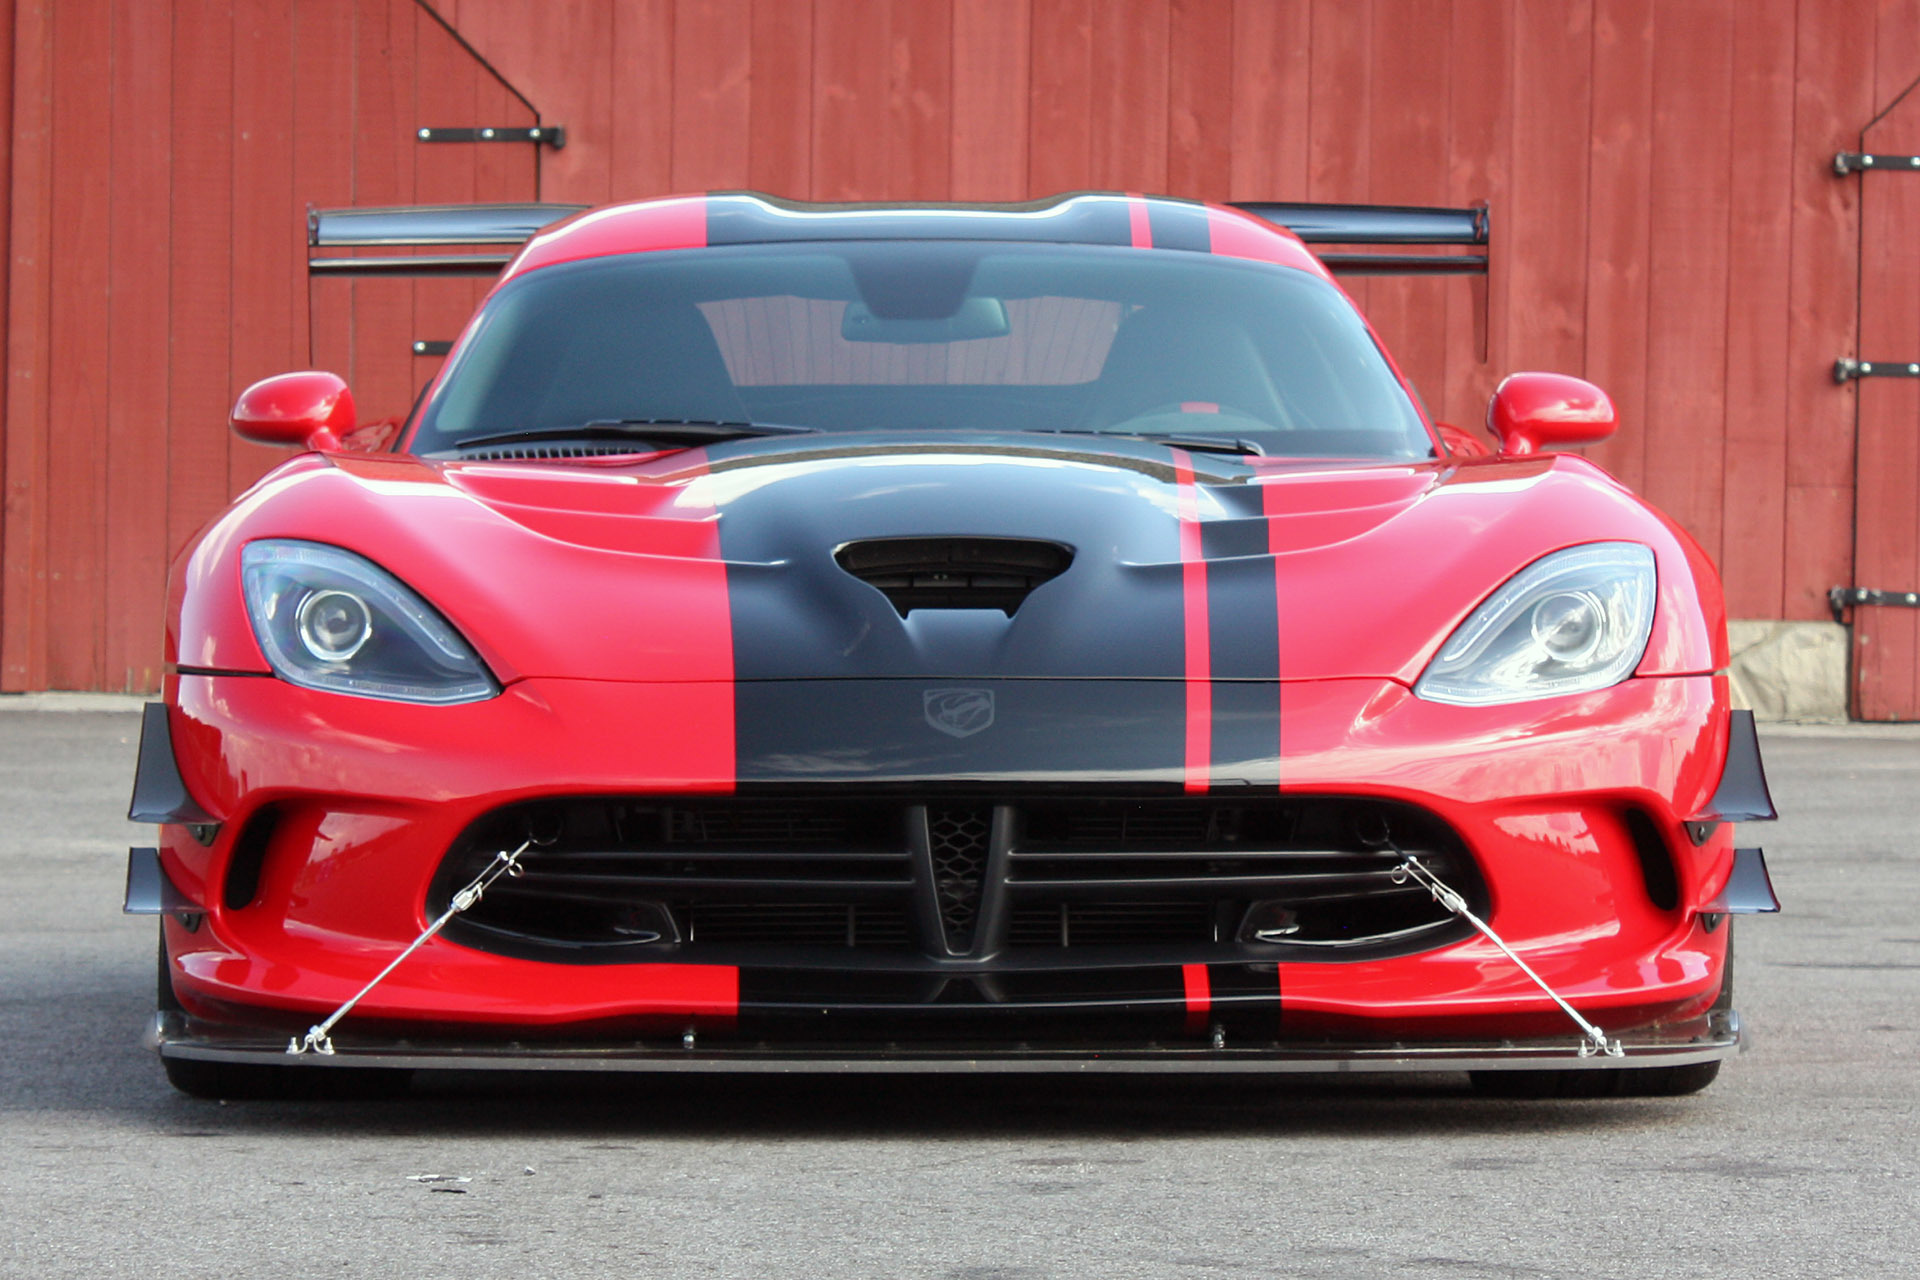 dodge viper price 2016 html with 1804252 2016 Dodge Viper Acr Smashing Lap Records Everywhere on Audi Presents Worthersee Lineup Details in addition Deepika Malayalam Newspaper Kerala Deepika Newspaper Kerala also 2017 Challenger Hellcat Emblem together with 1804252 2016 Dodge Viper ACR smashing lap records everywhere further Hellcat Durango.